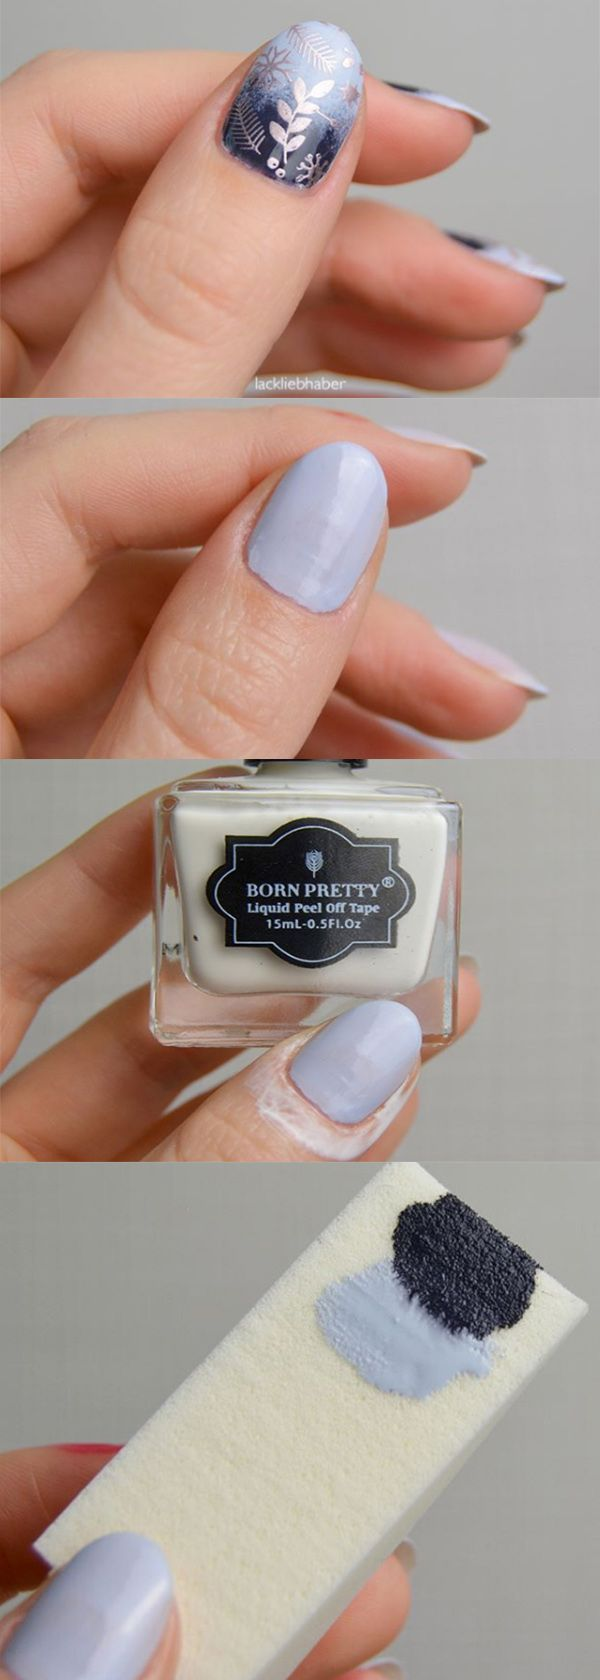 Nail design on how to make #gradientnails  with gradient sponge, Four steps to finish your cool stamping gradient nails, get the #nailtools in bornprettystore.com.  #bornpretty